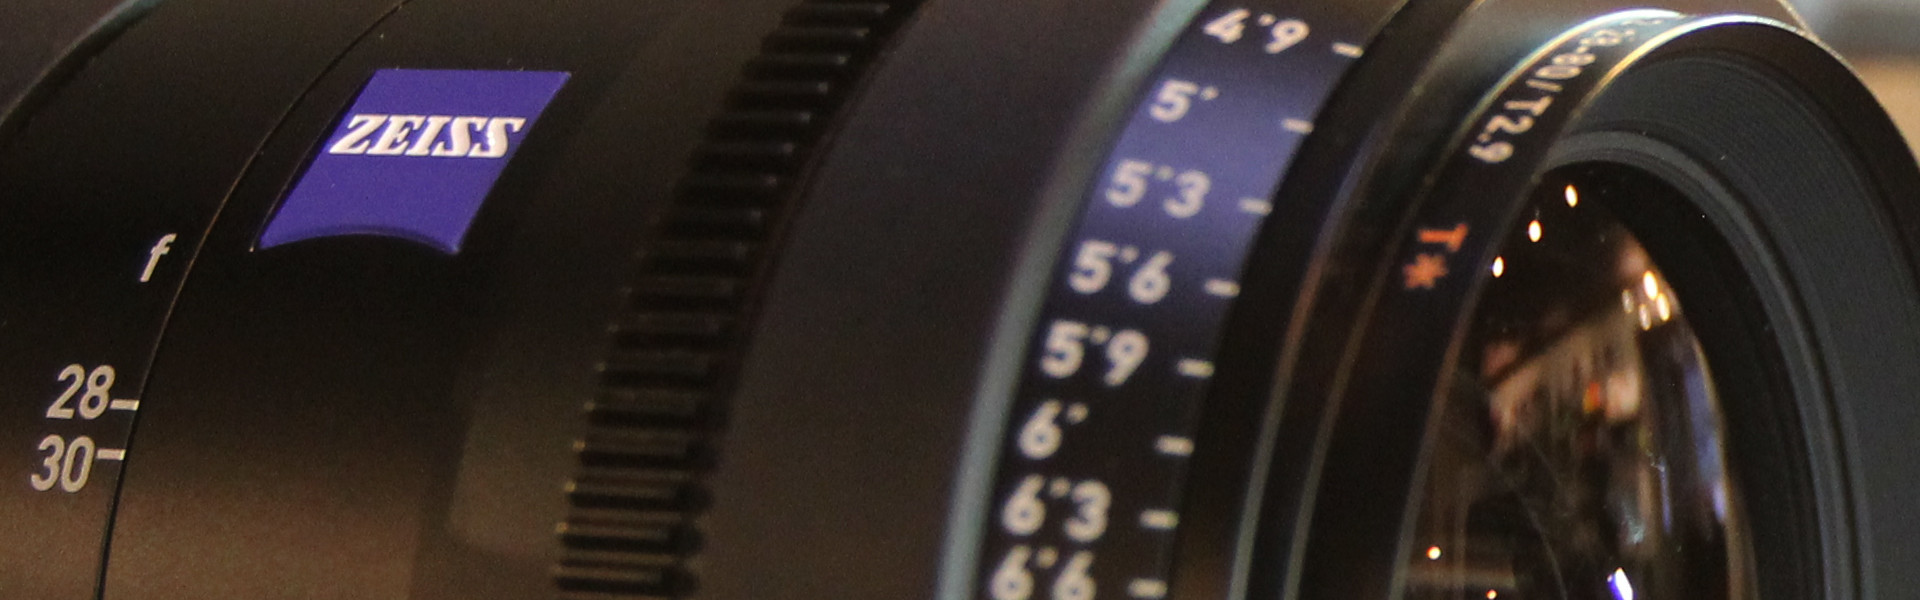 Header image for article Now Shipping: Zeiss CZ.2 70-200 T2.9 Compact Zoom